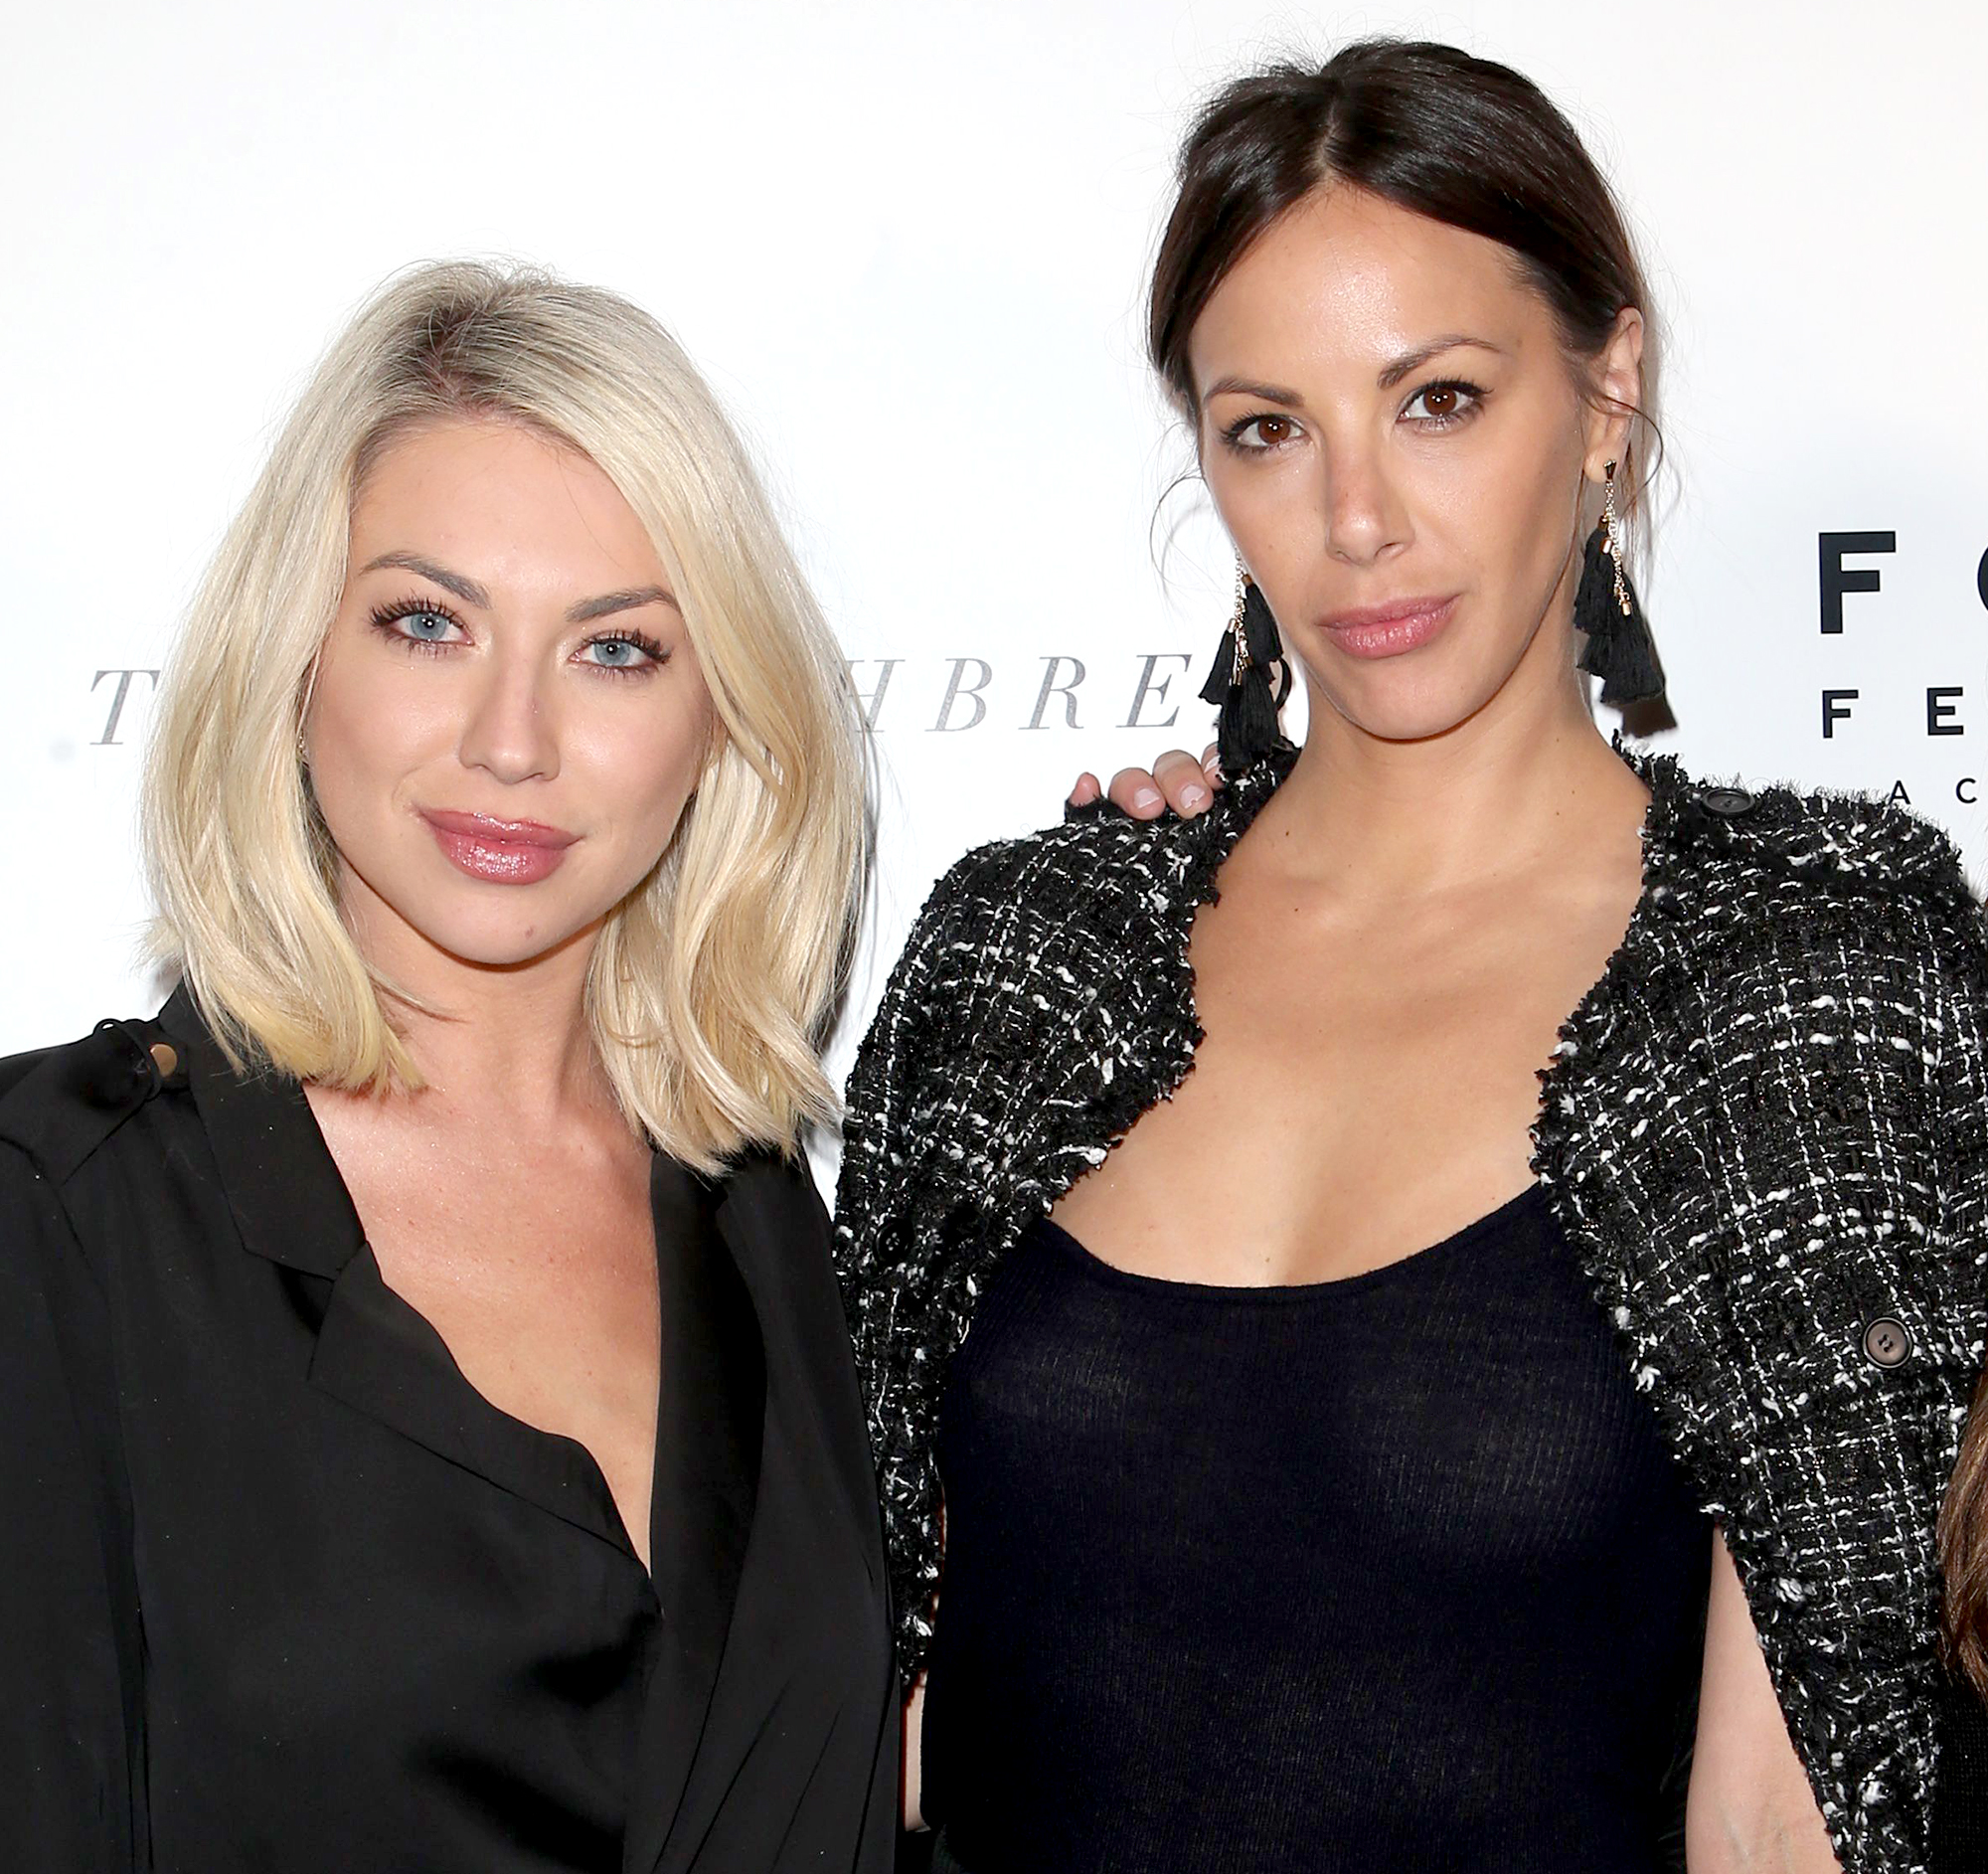 Kristen-Doute--Stassi-Schroeder-Ditched-Me-Because-I'm-Single